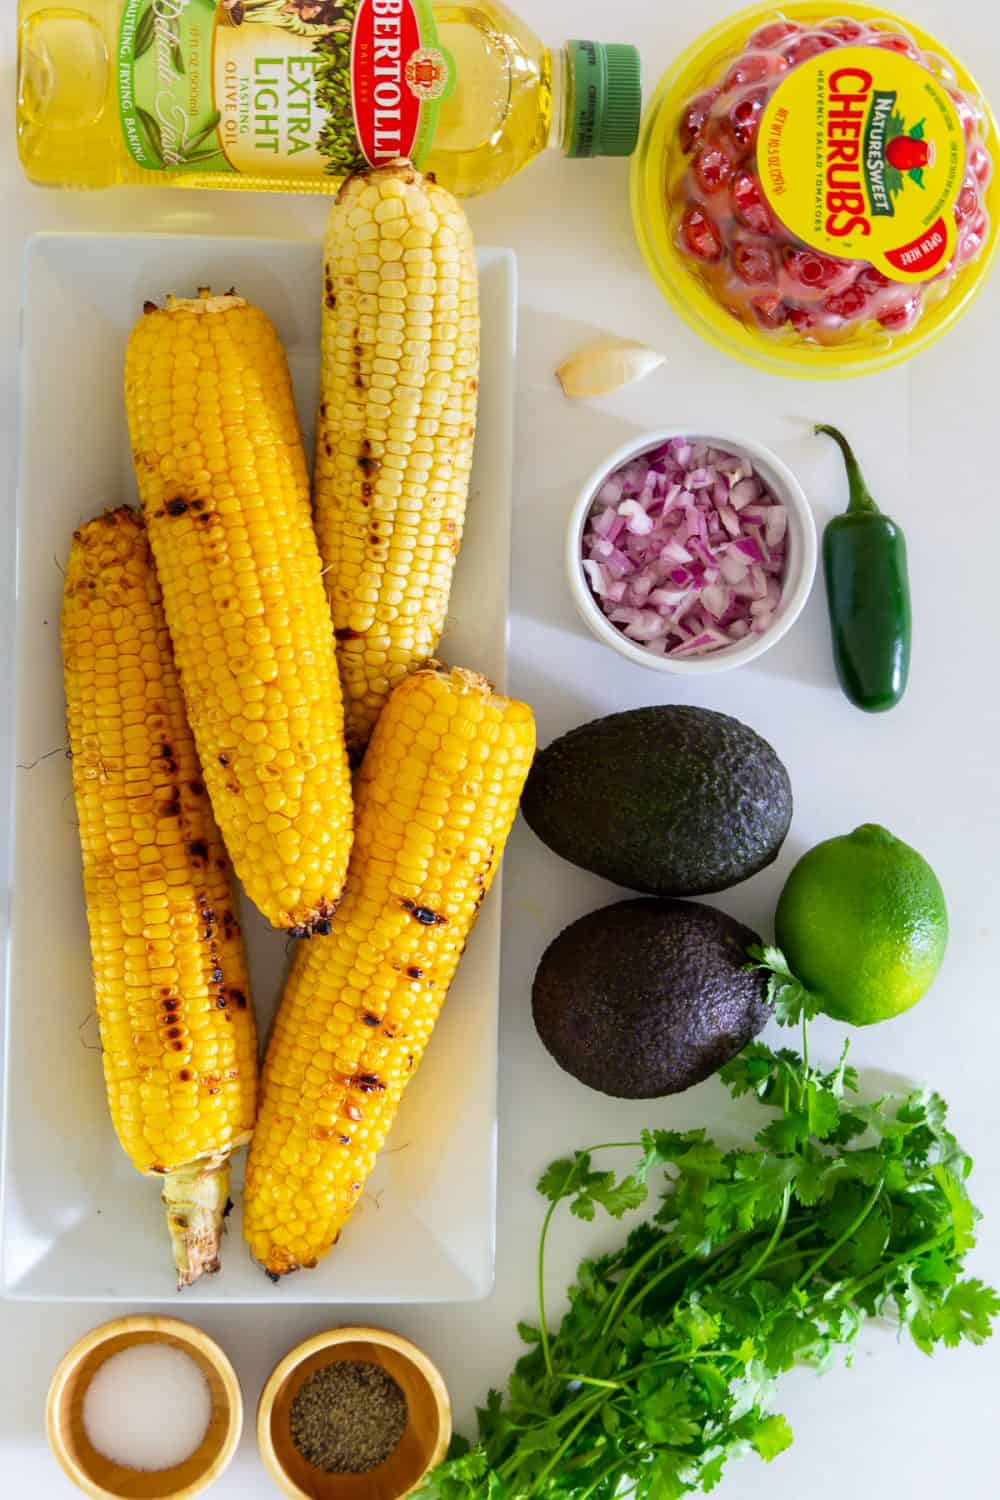 Overhead picture of ingredients for a avocado corn salad